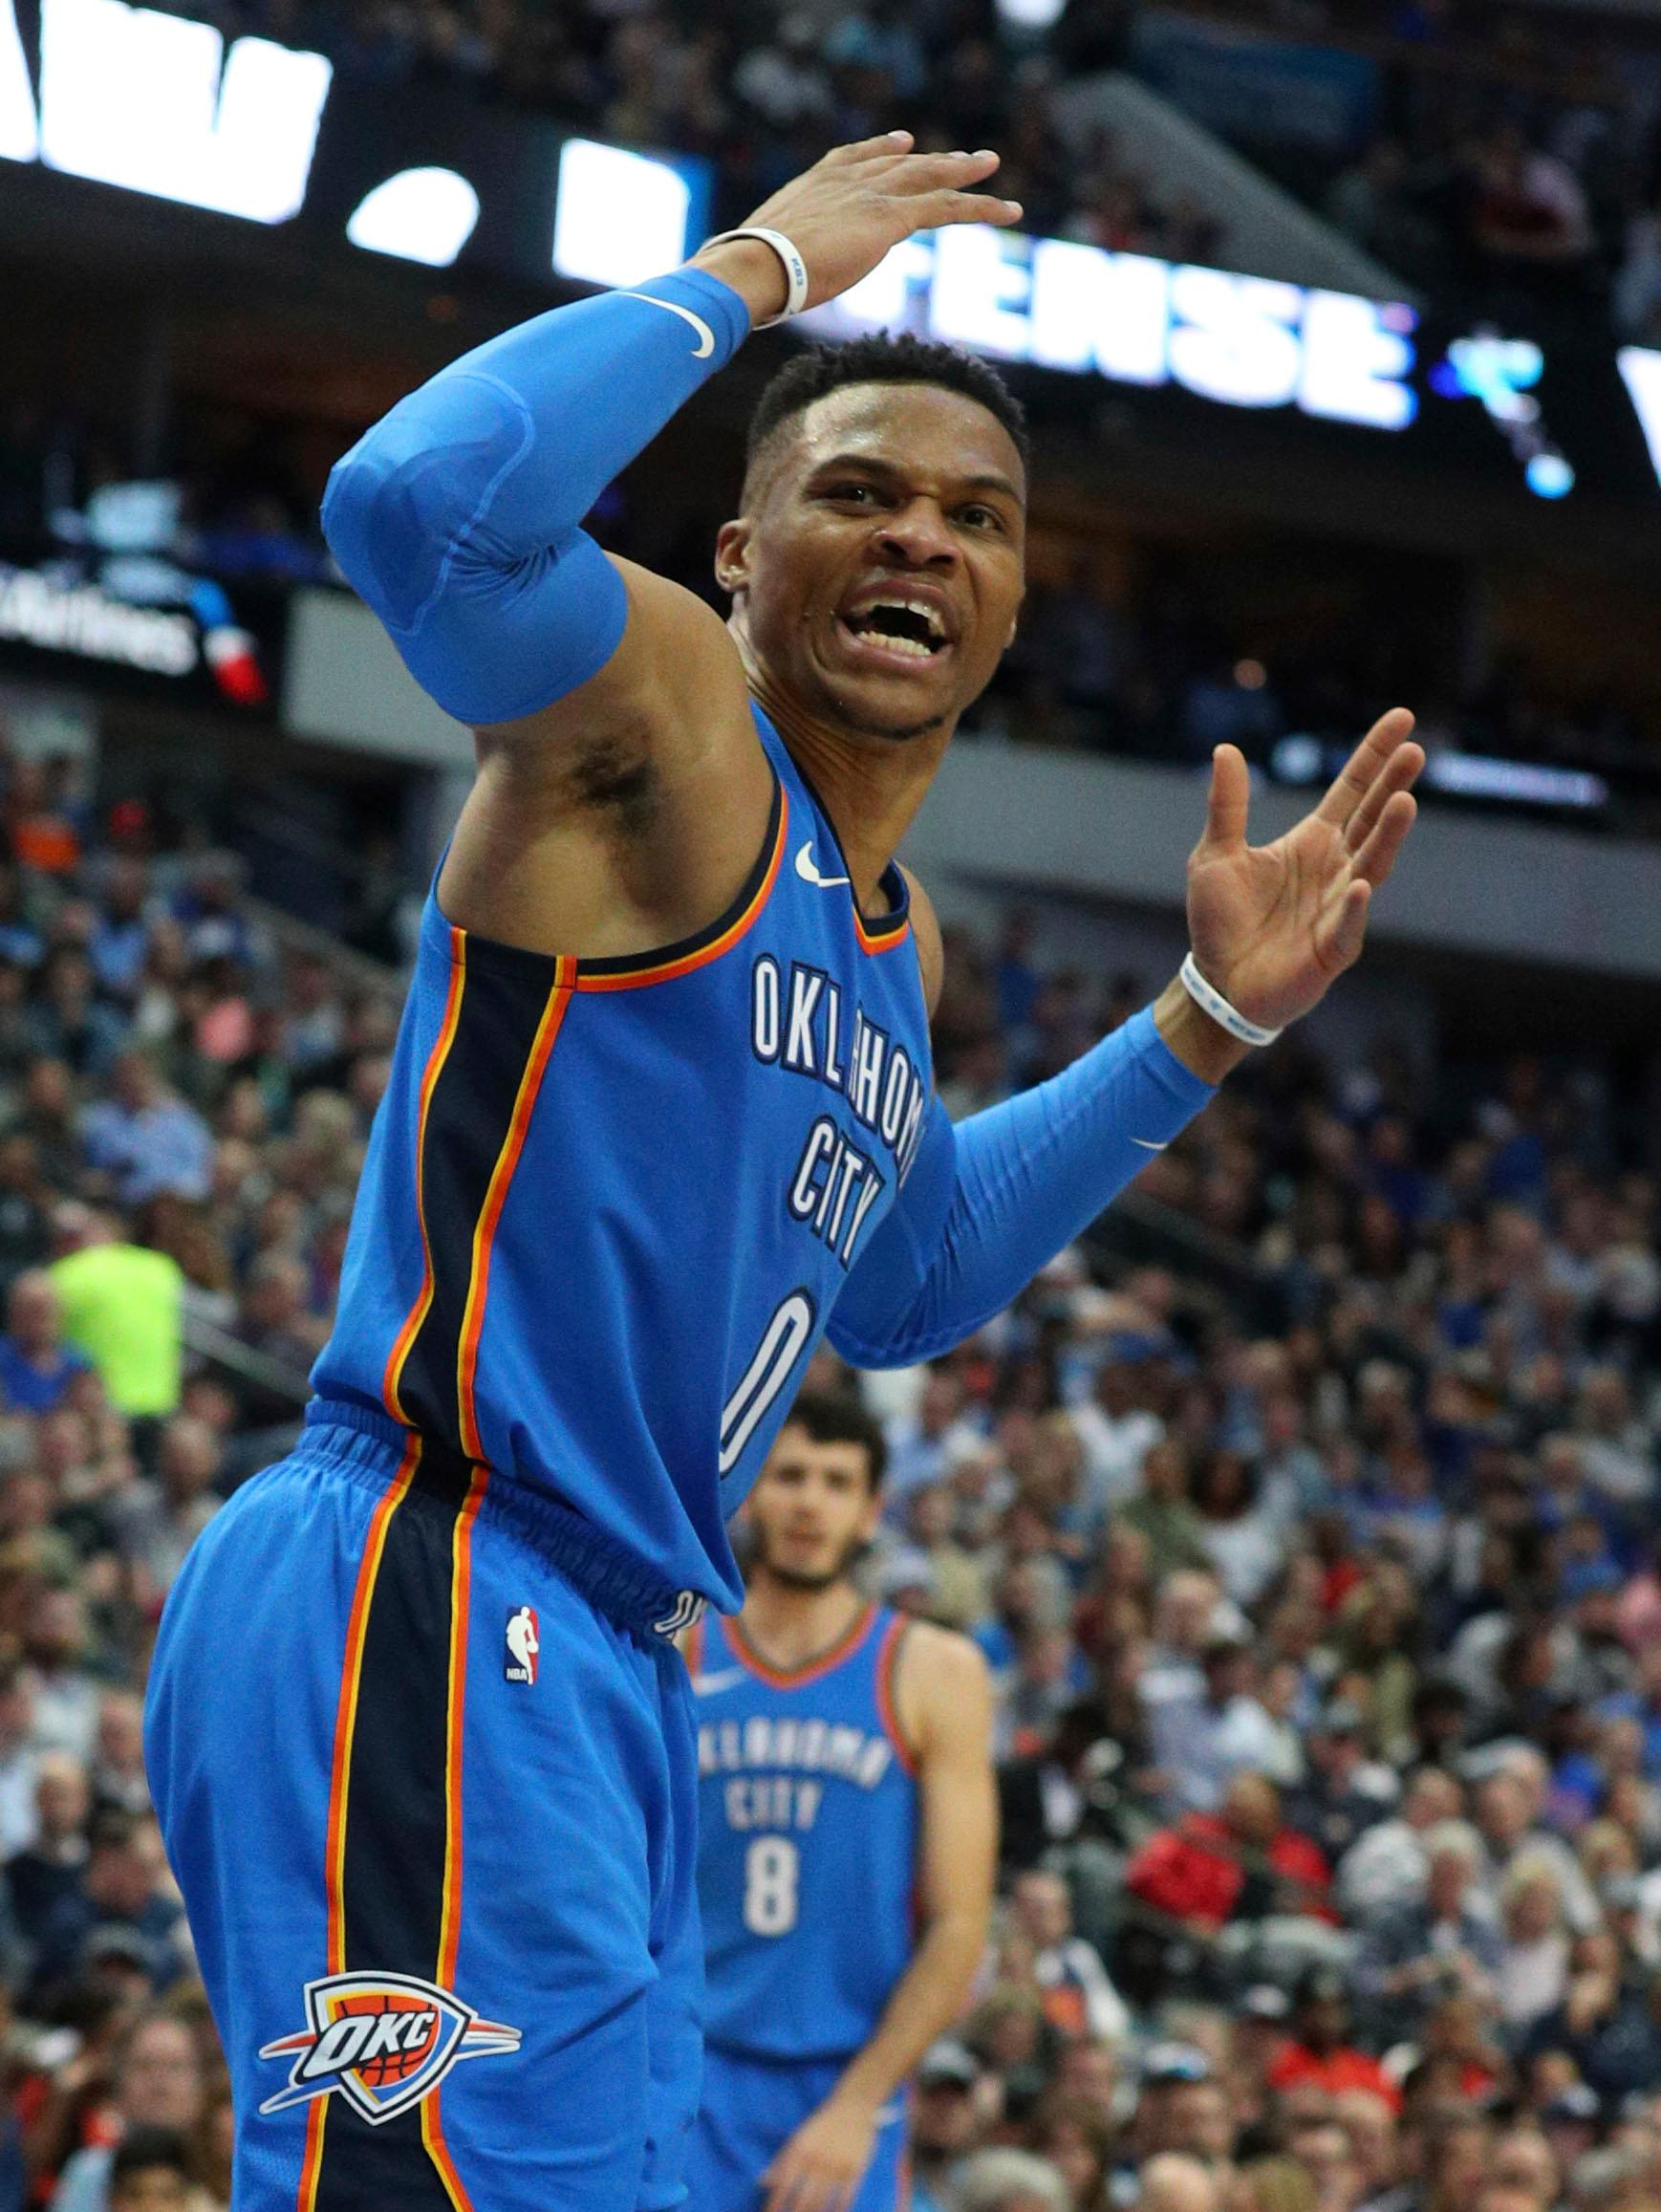 Oklahoma City Thunder guard Russell Westbrook (0) reacts after being fouled during the first half of an NBA basketball game against the Dallas Mavericks, Wednesday, Feb. 28, 2018 in Dallas. (AP Photo/Richard W. Rodriguez)